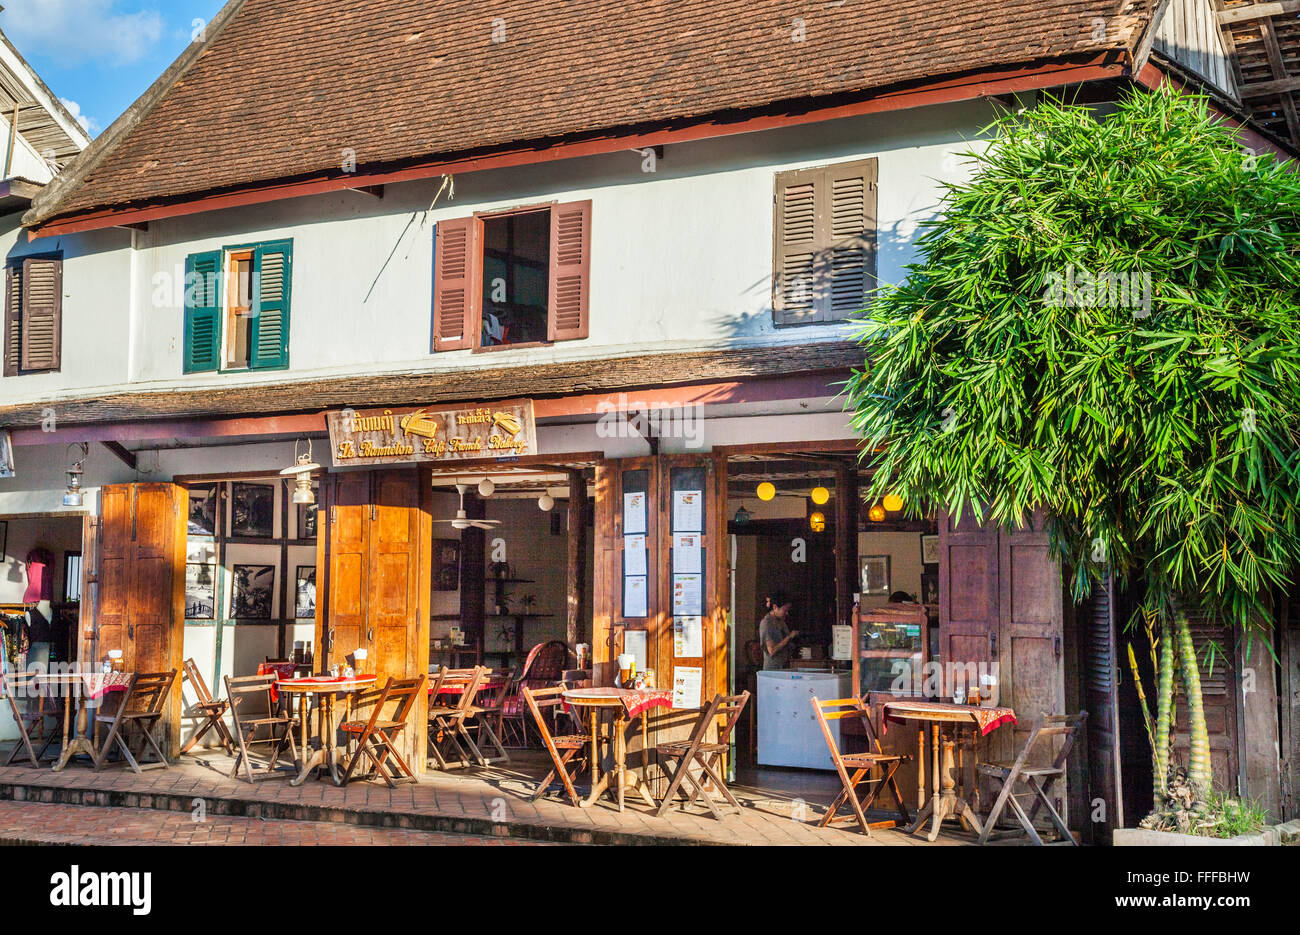 Lao People's Democratic Republic, Luang Prabang, Le Banneton Cafe French Bakery - Stock Image